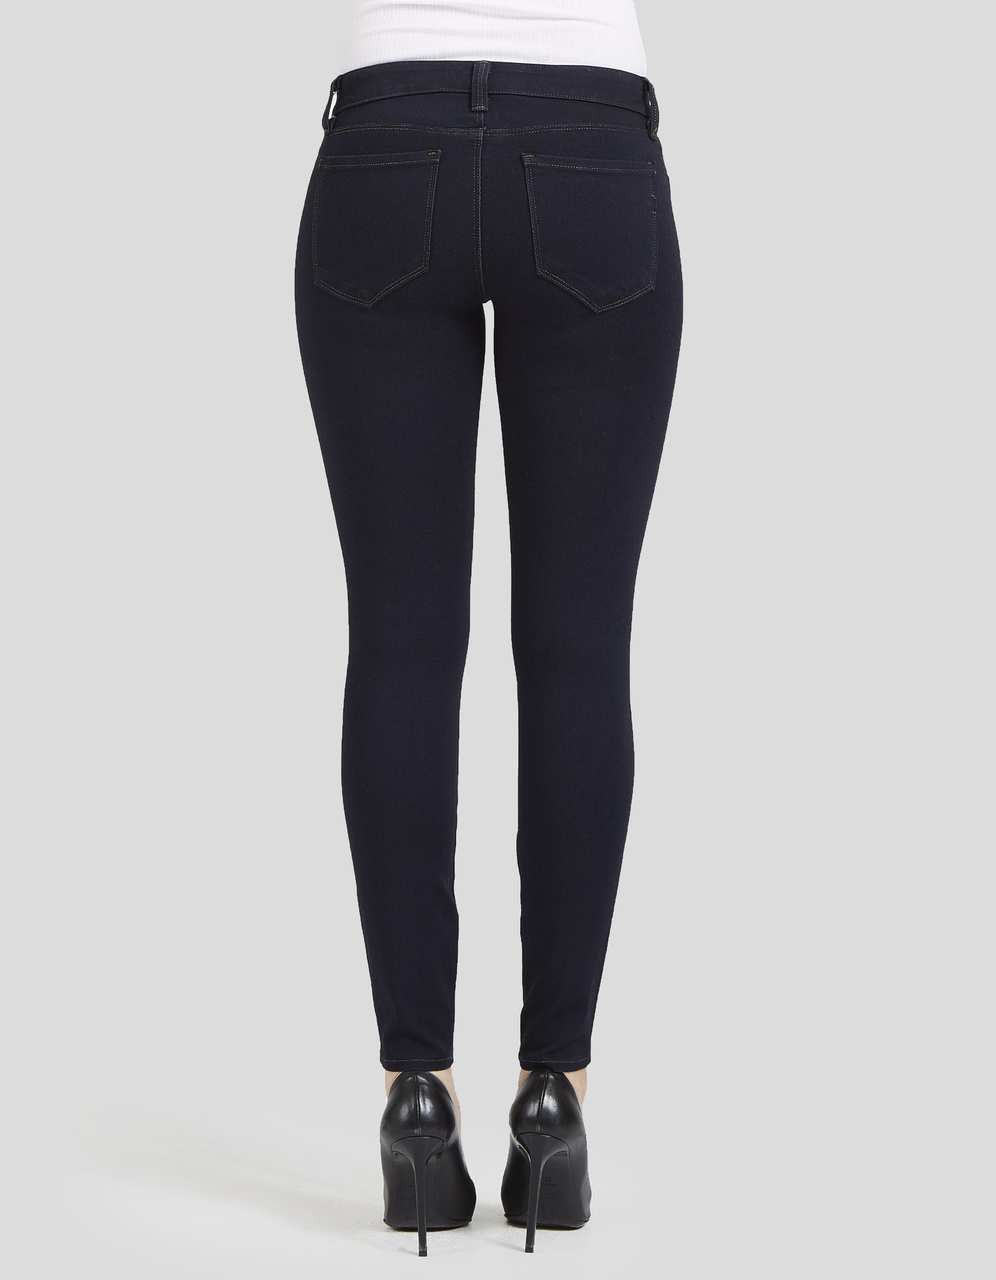 High Crawford waist skinny jeans photos